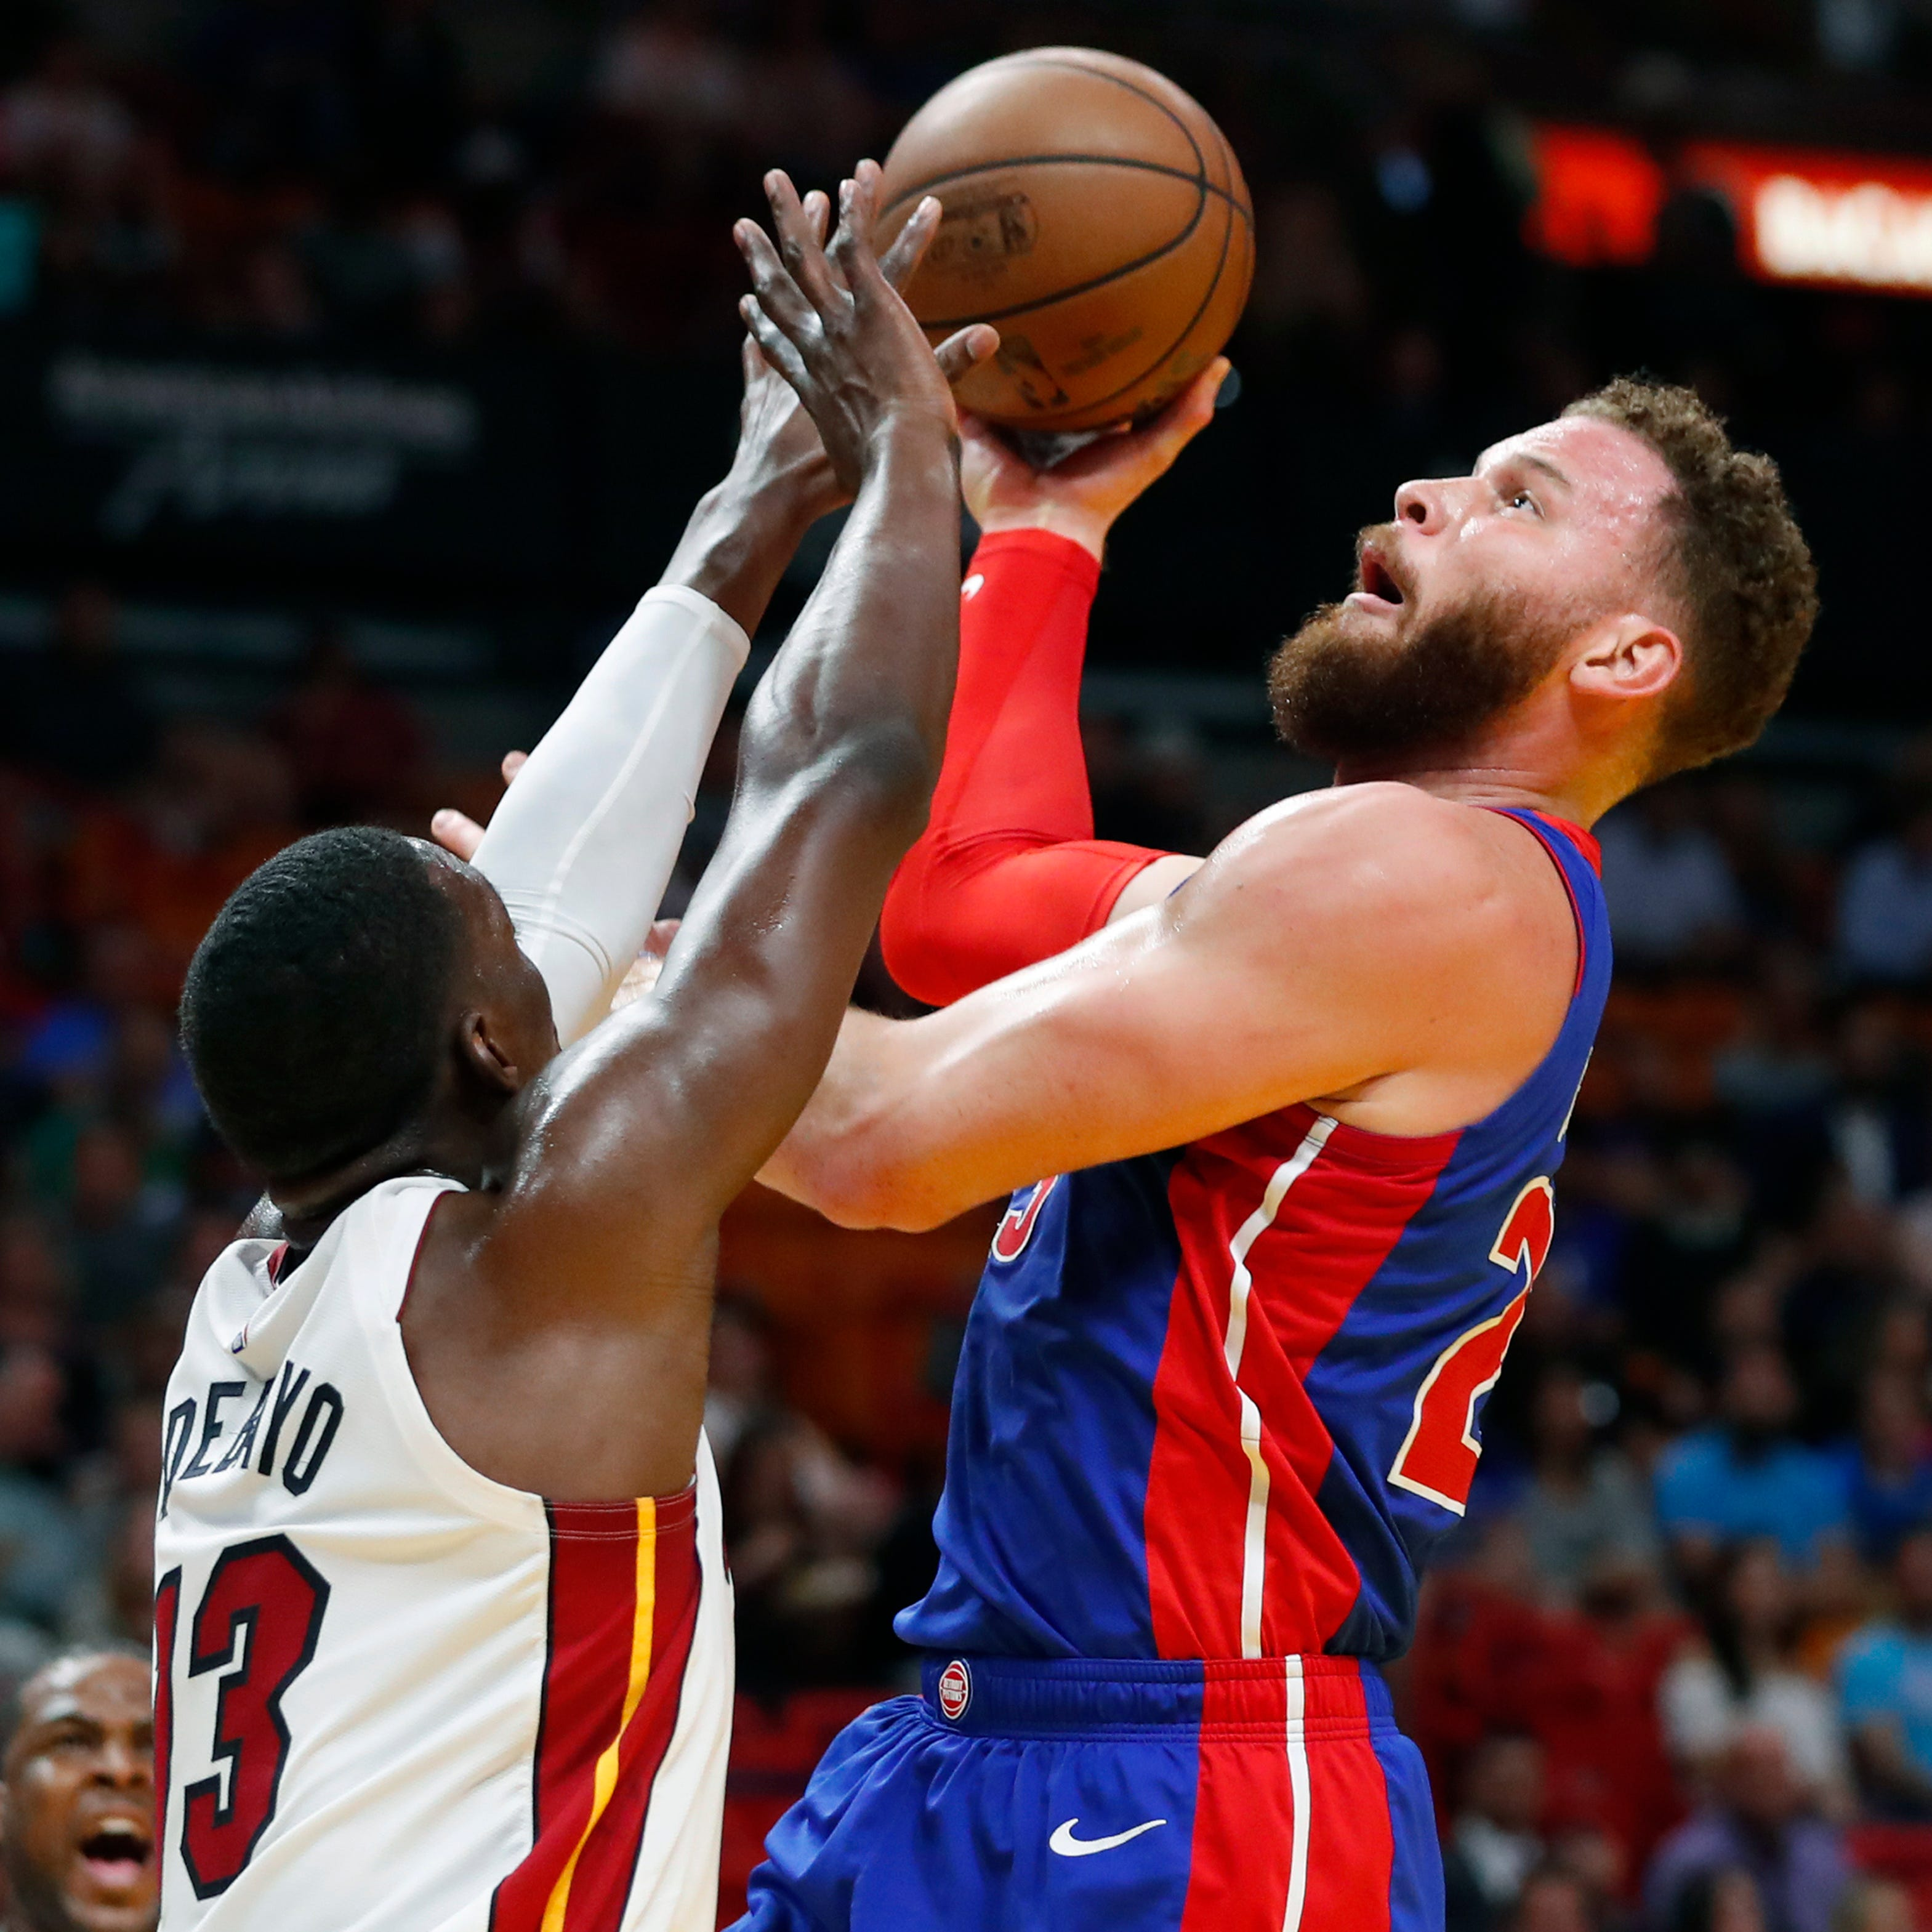 Pistons go ice-cold in third, get demolished by Heat; Reggie Jackson injured